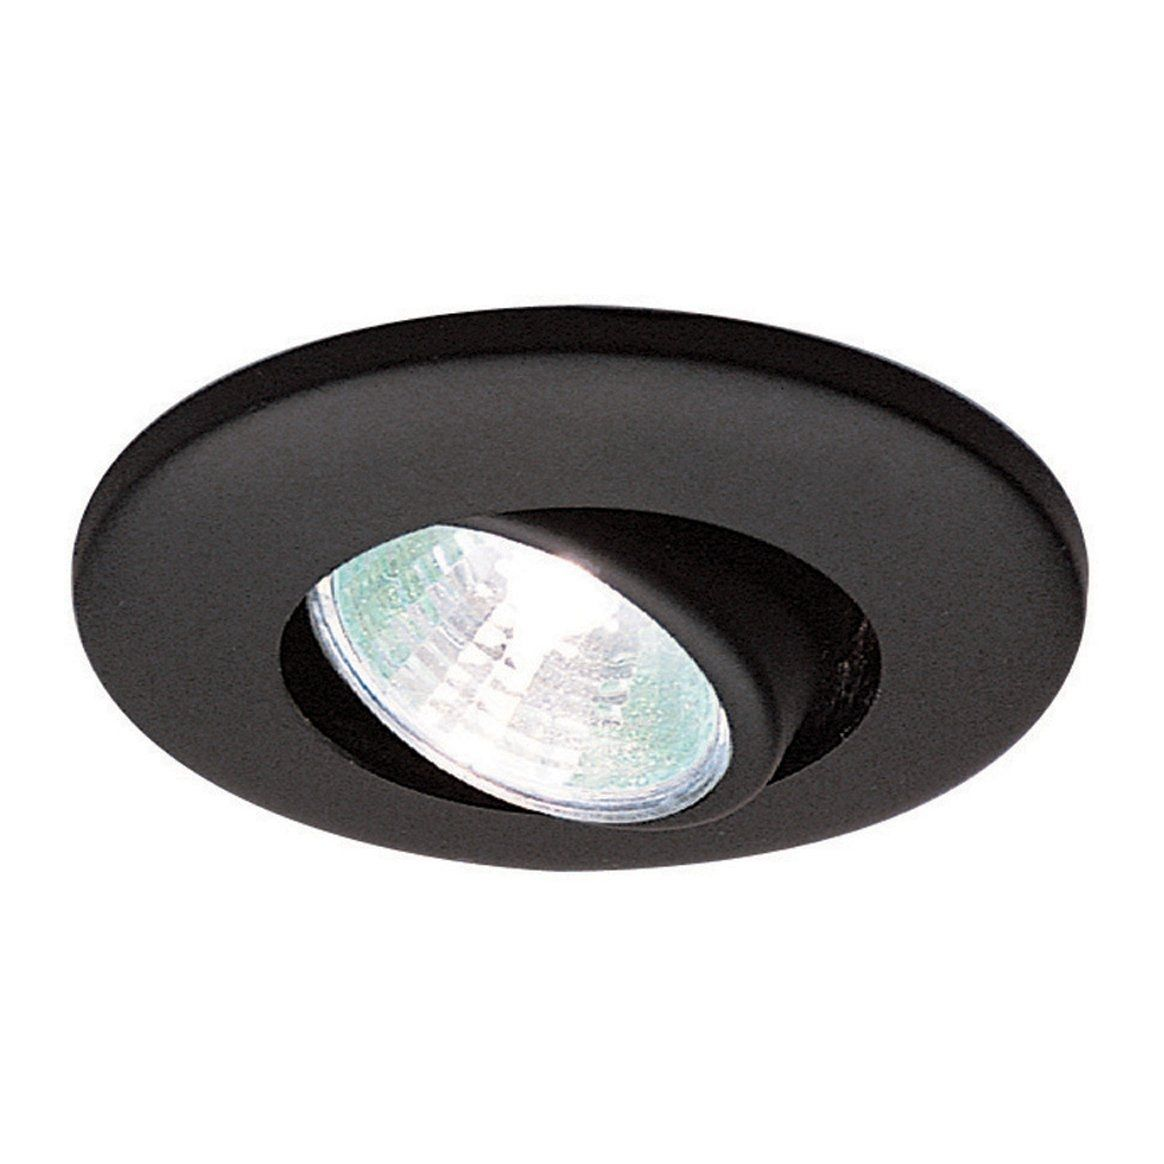 Miniature low voltage recessed lighting fixtures httpdeai rank miniature low voltage recessed lighting fixtures arubaitofo Image collections